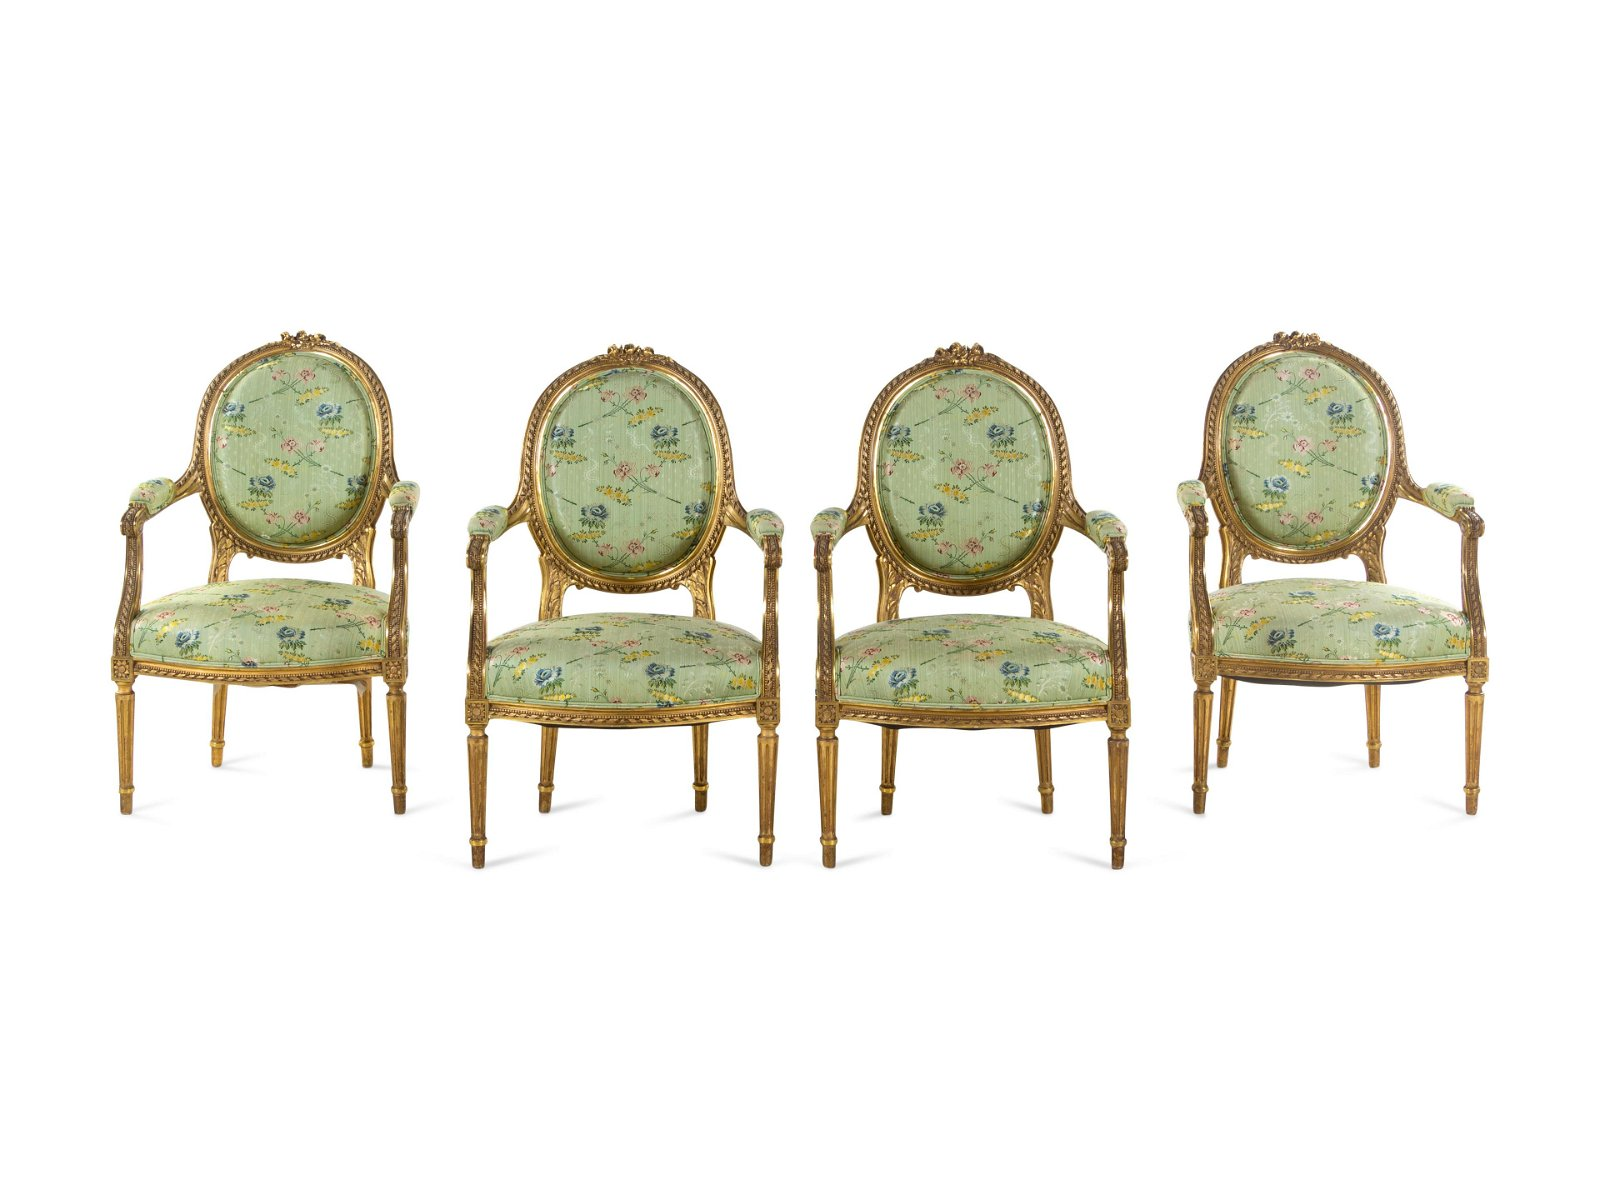 A Set of Four Louis XVI Style Carved Giltwood Fauteuils